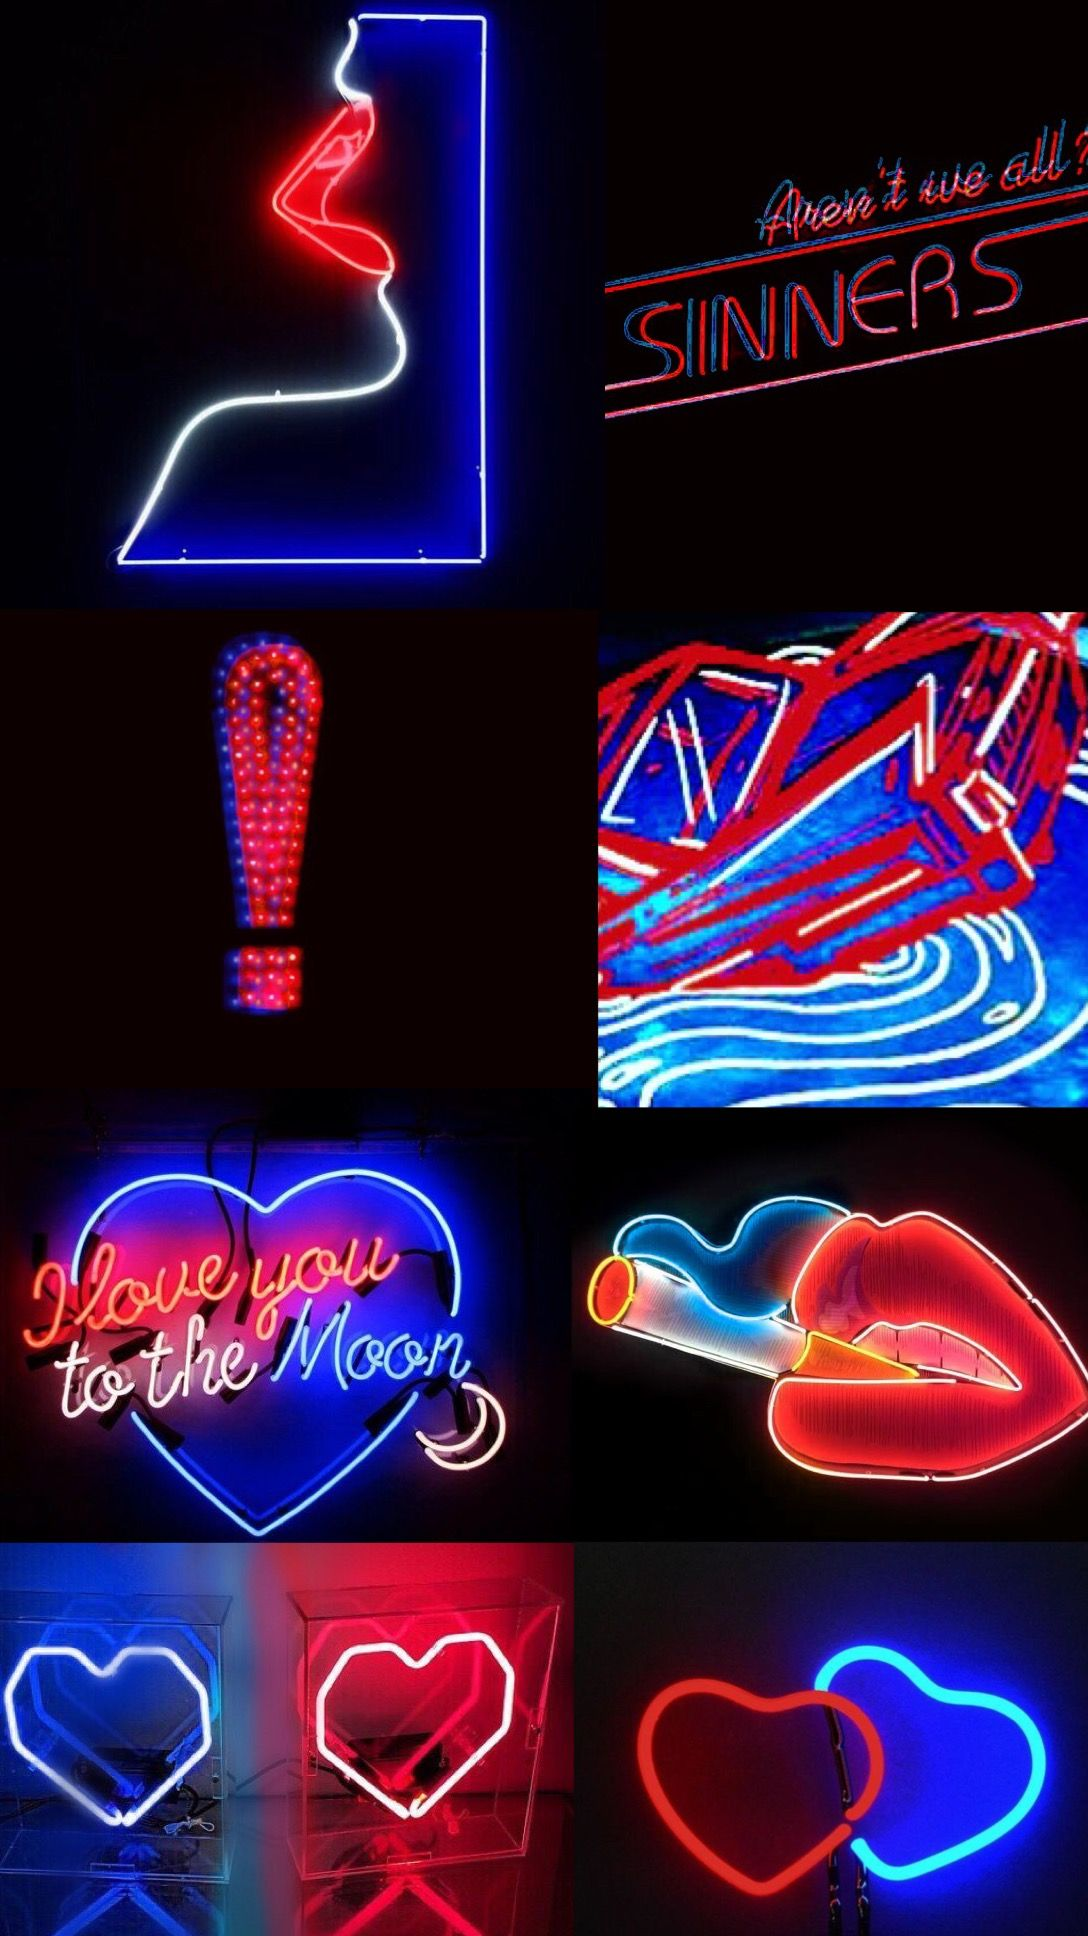 doab aesthetic   panic at the disco wallpaper Bands11 in 2019 1088x1936